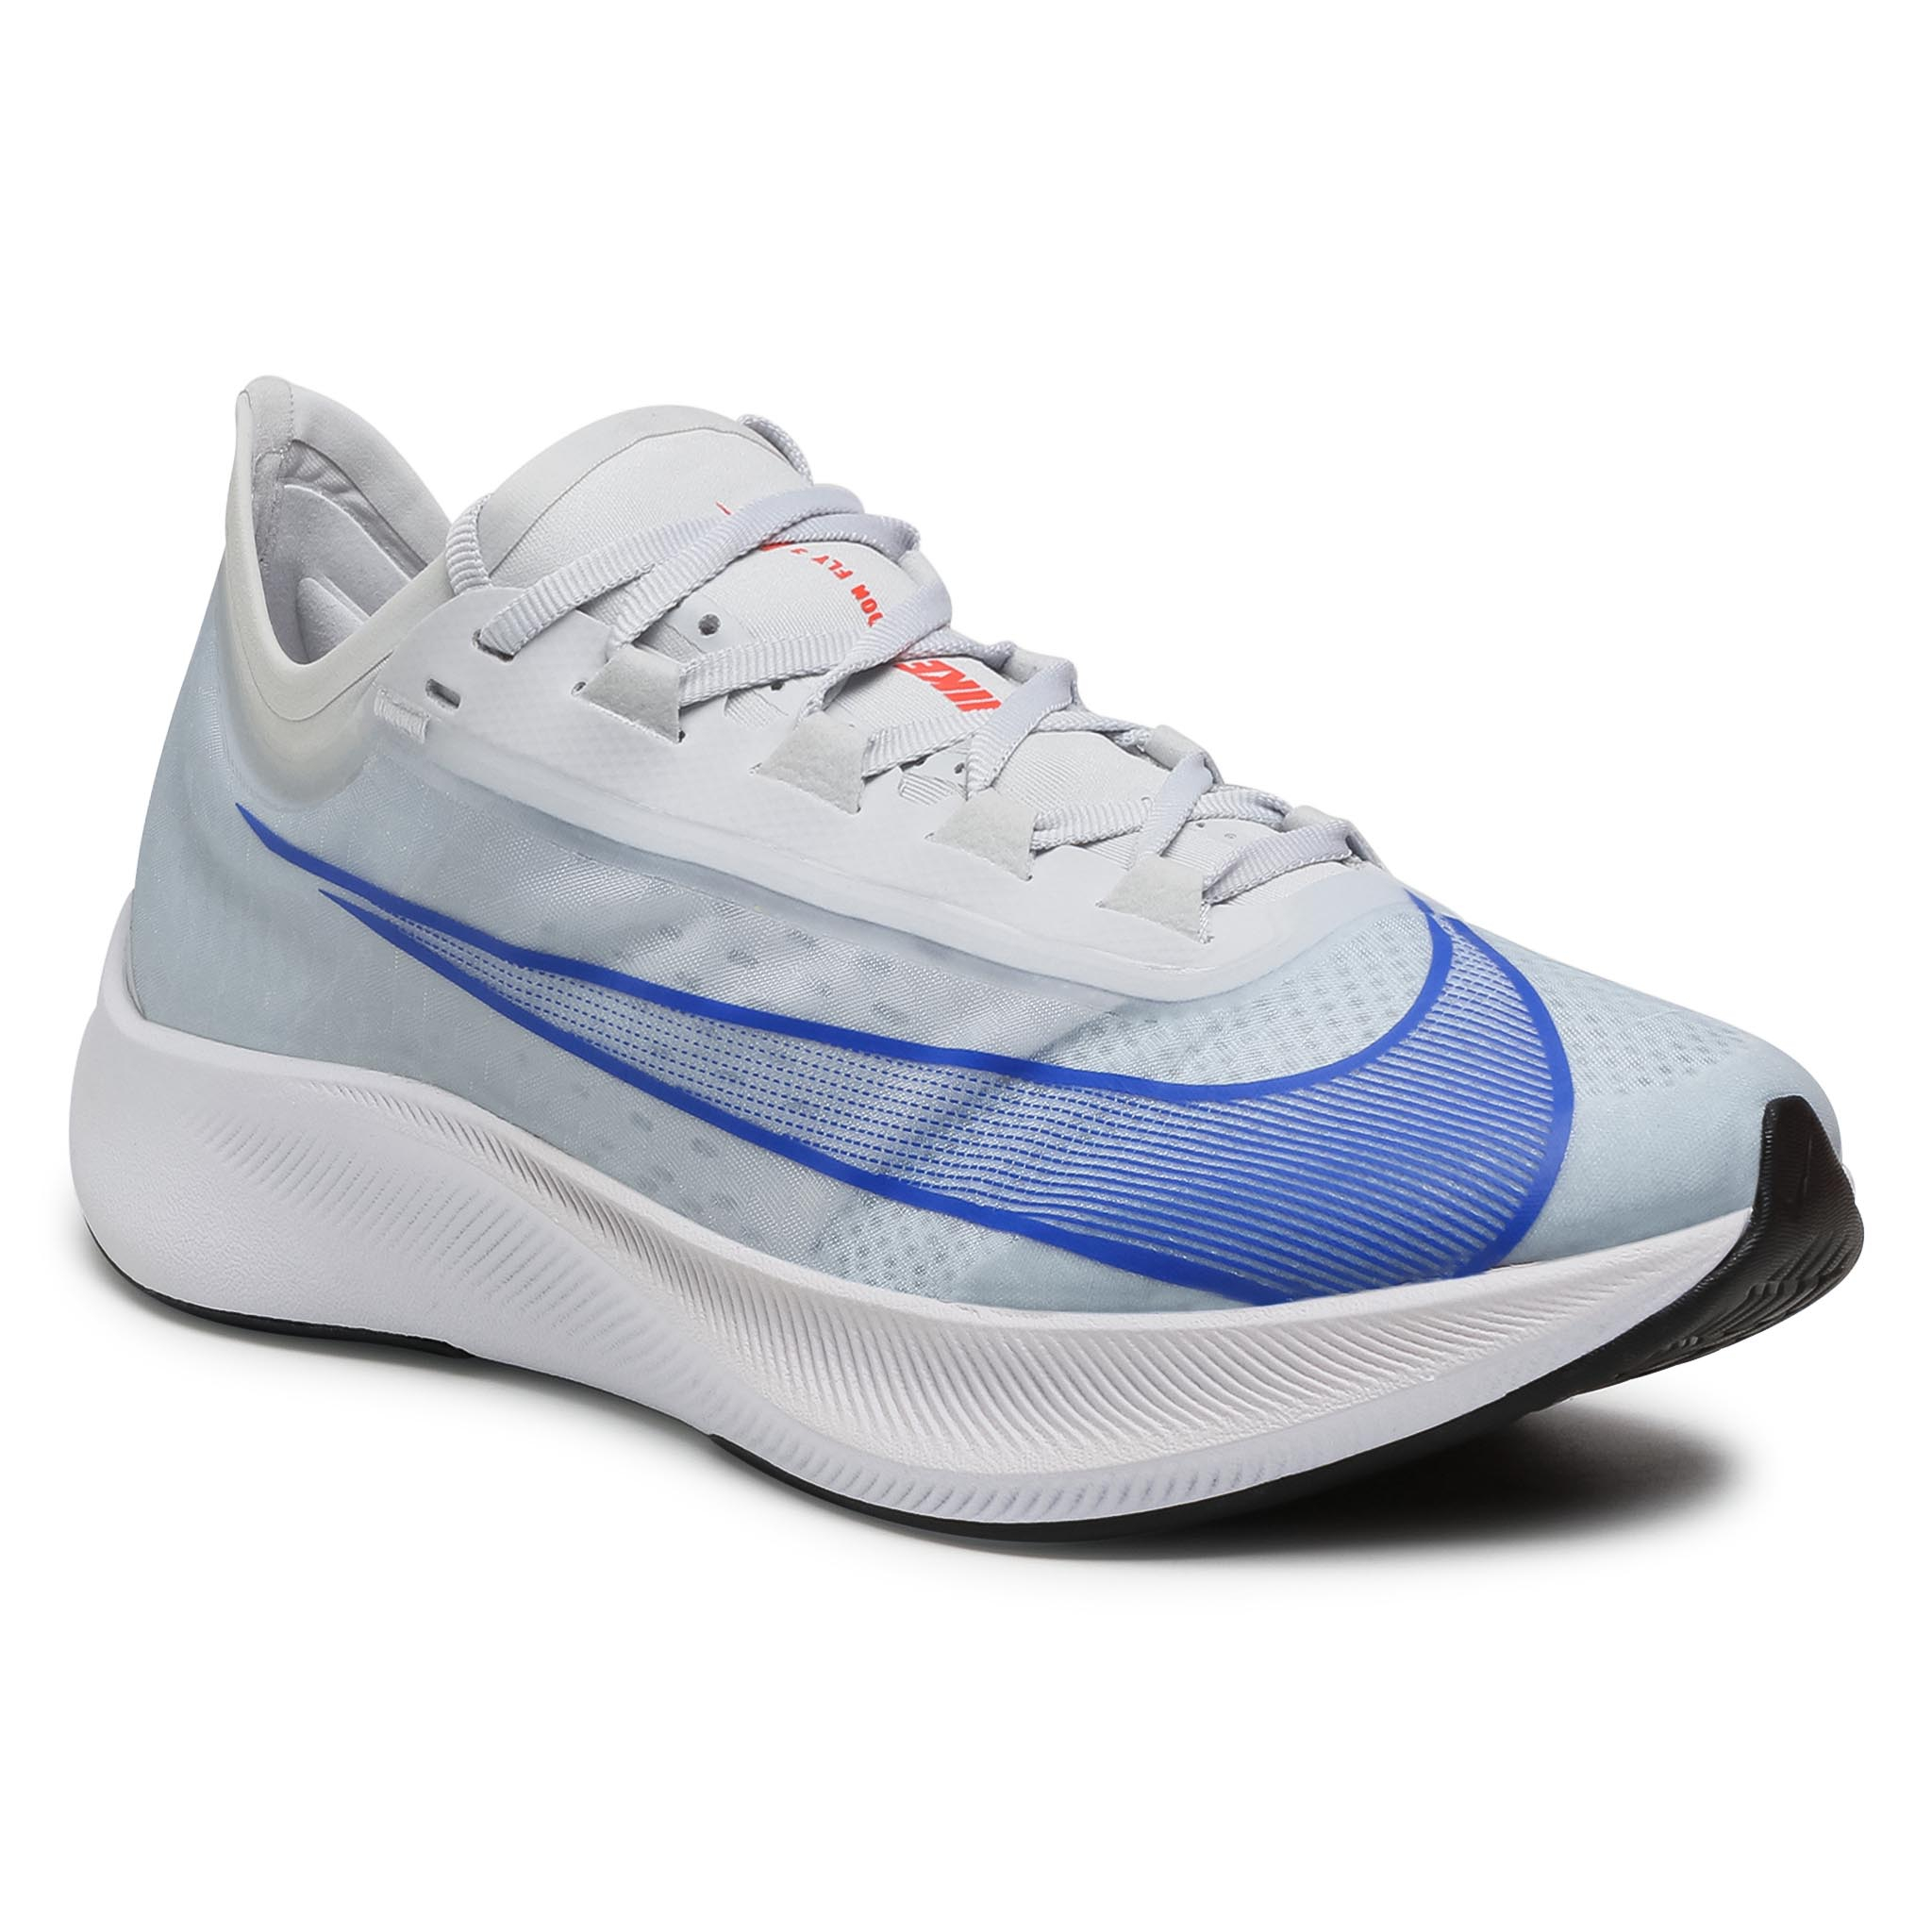 Batai NIKE - Zoom Fly 3 AT8240 005 Pure Platinum/Racer Blue